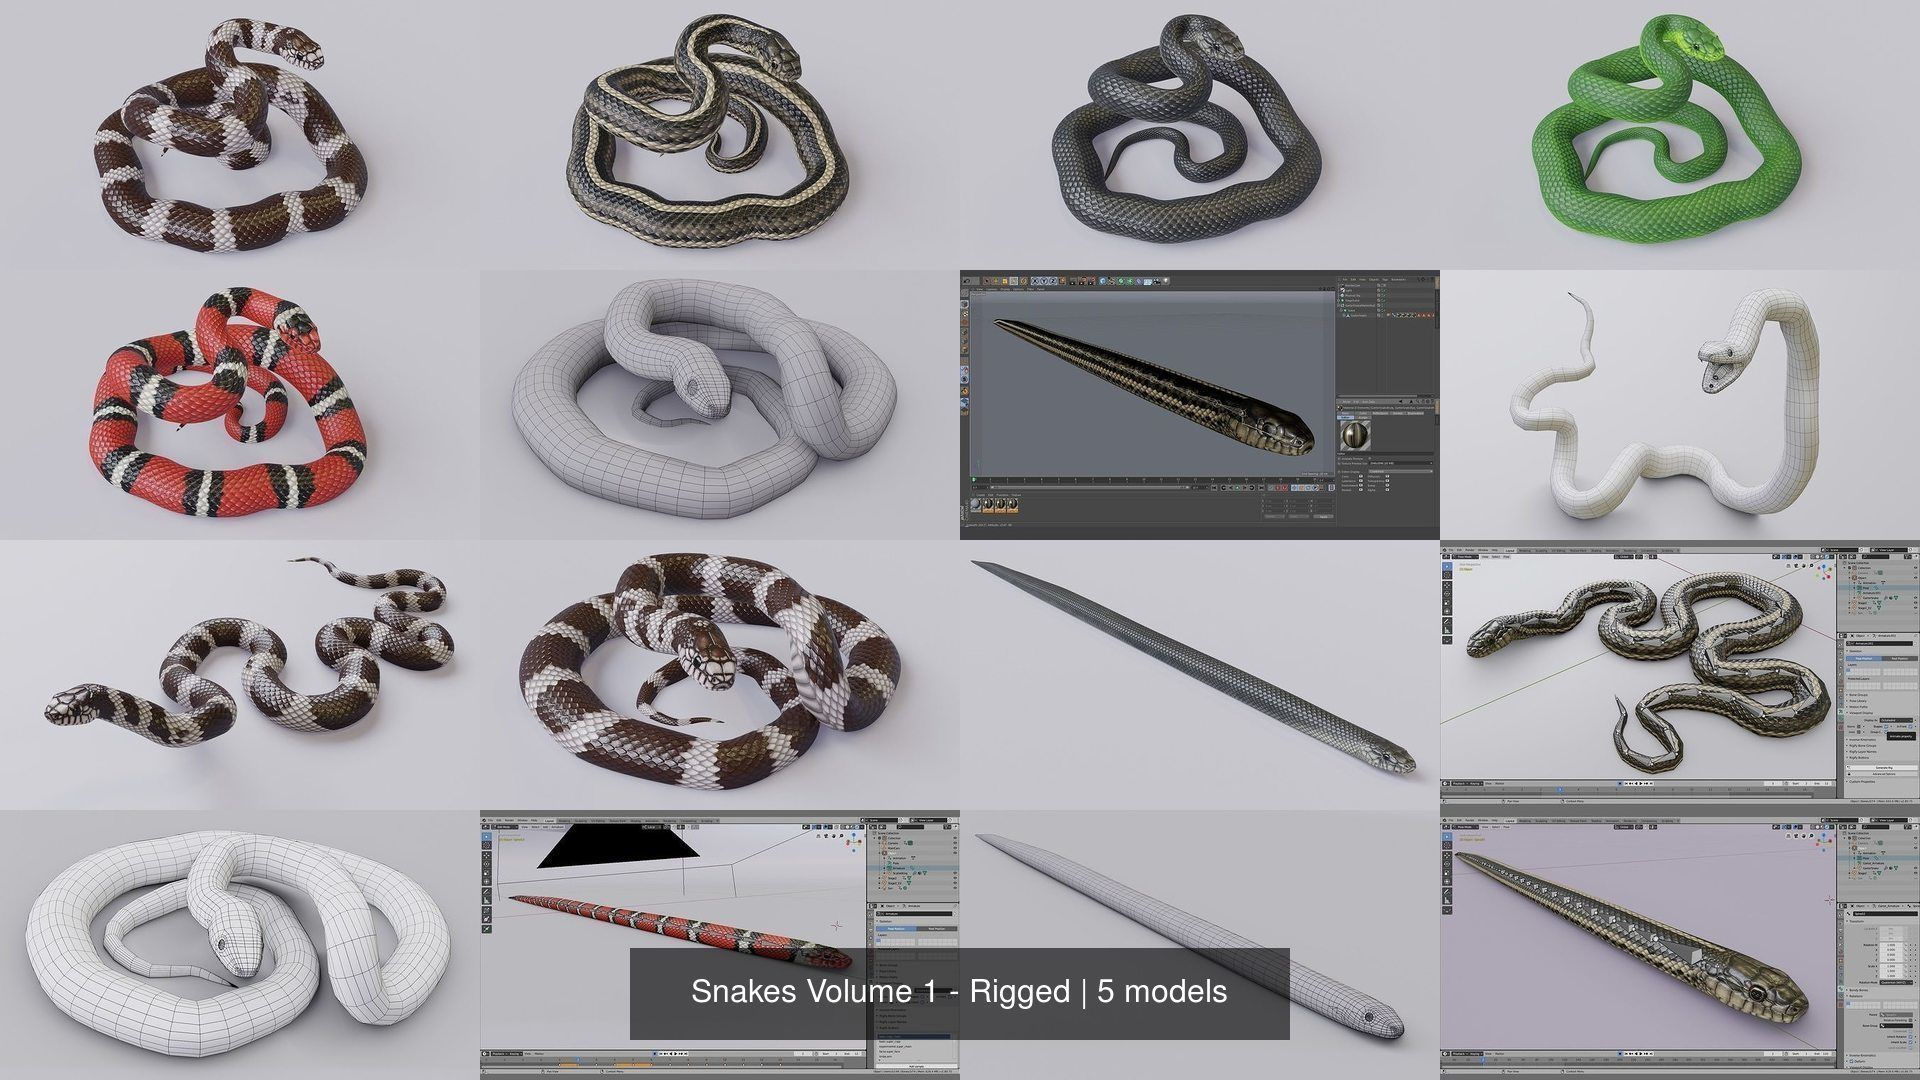 Snakes Volume 1 - Rigged